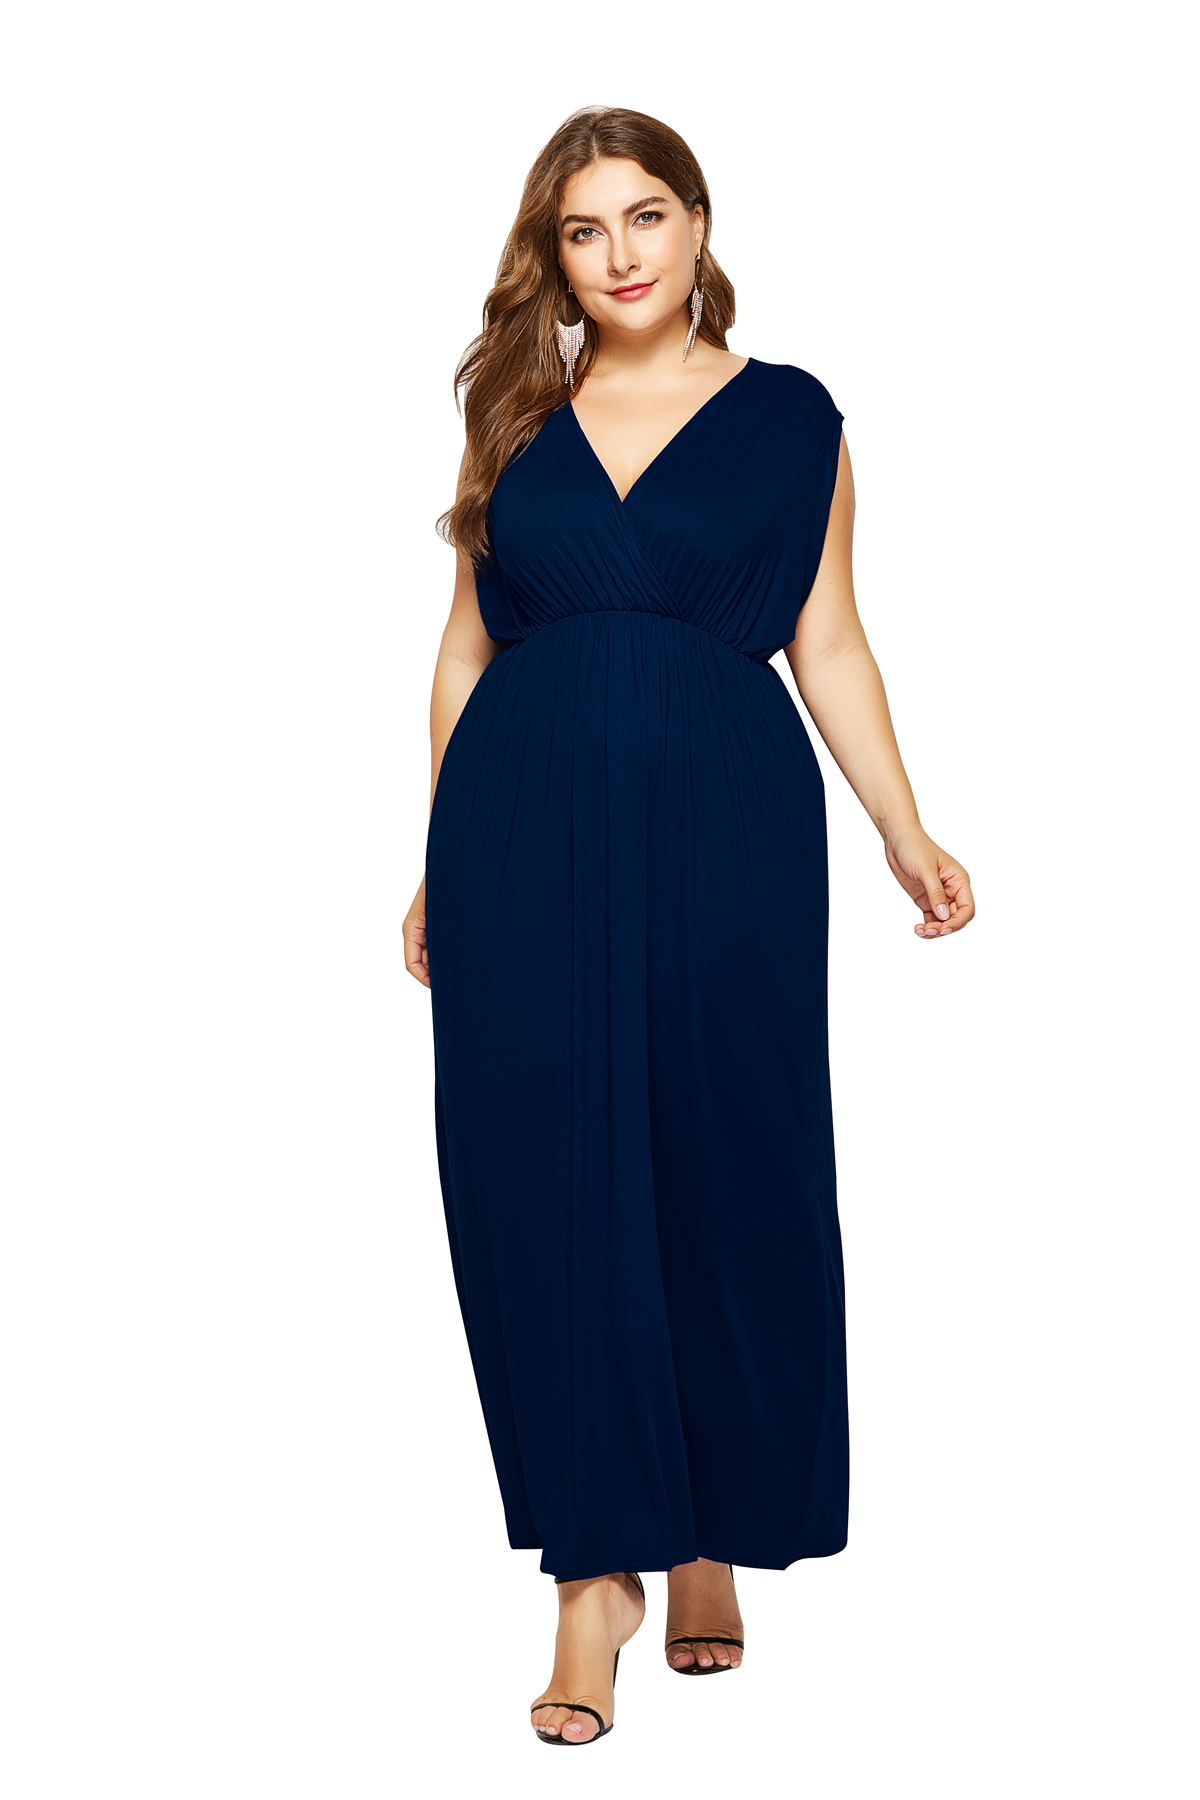 lovely sweety long women dress cotton fashion maxi sea casual clothes low price sell sliming solid dress mid east style women in Dresses from Women 39 s Clothing